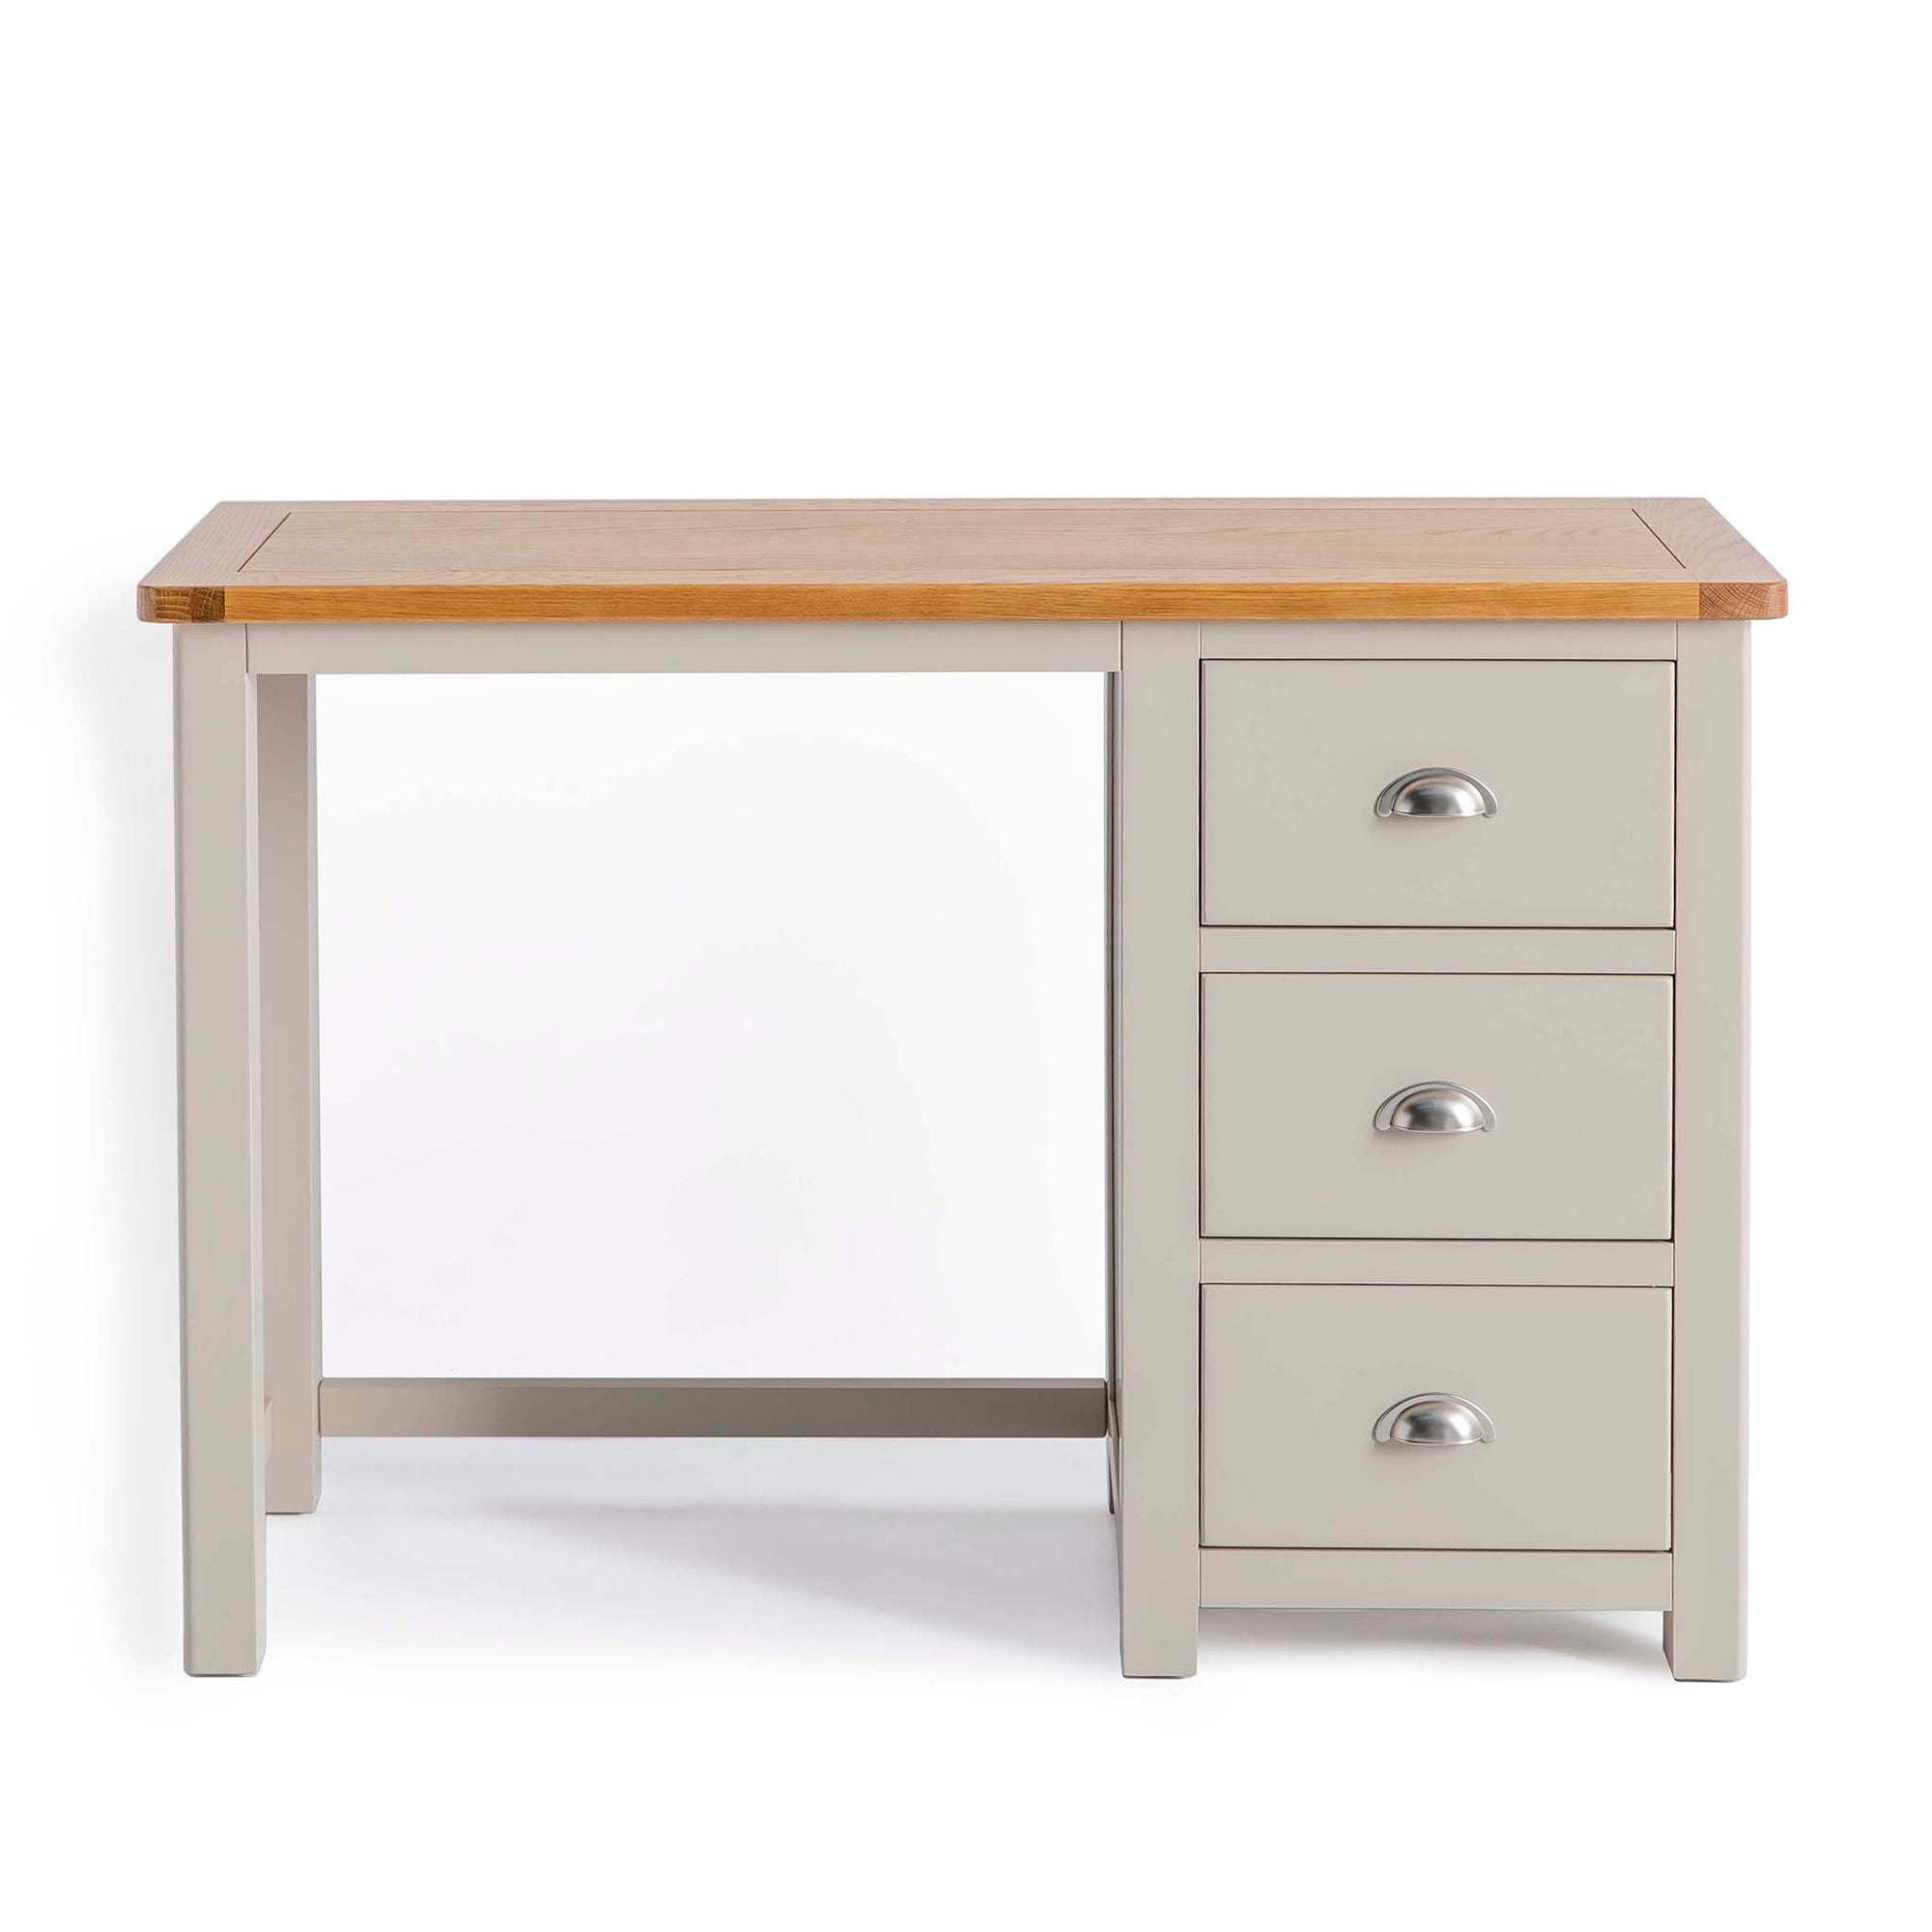 Padstow Stone Grey Small Dressing Table with Drawers by Roseland Furniture